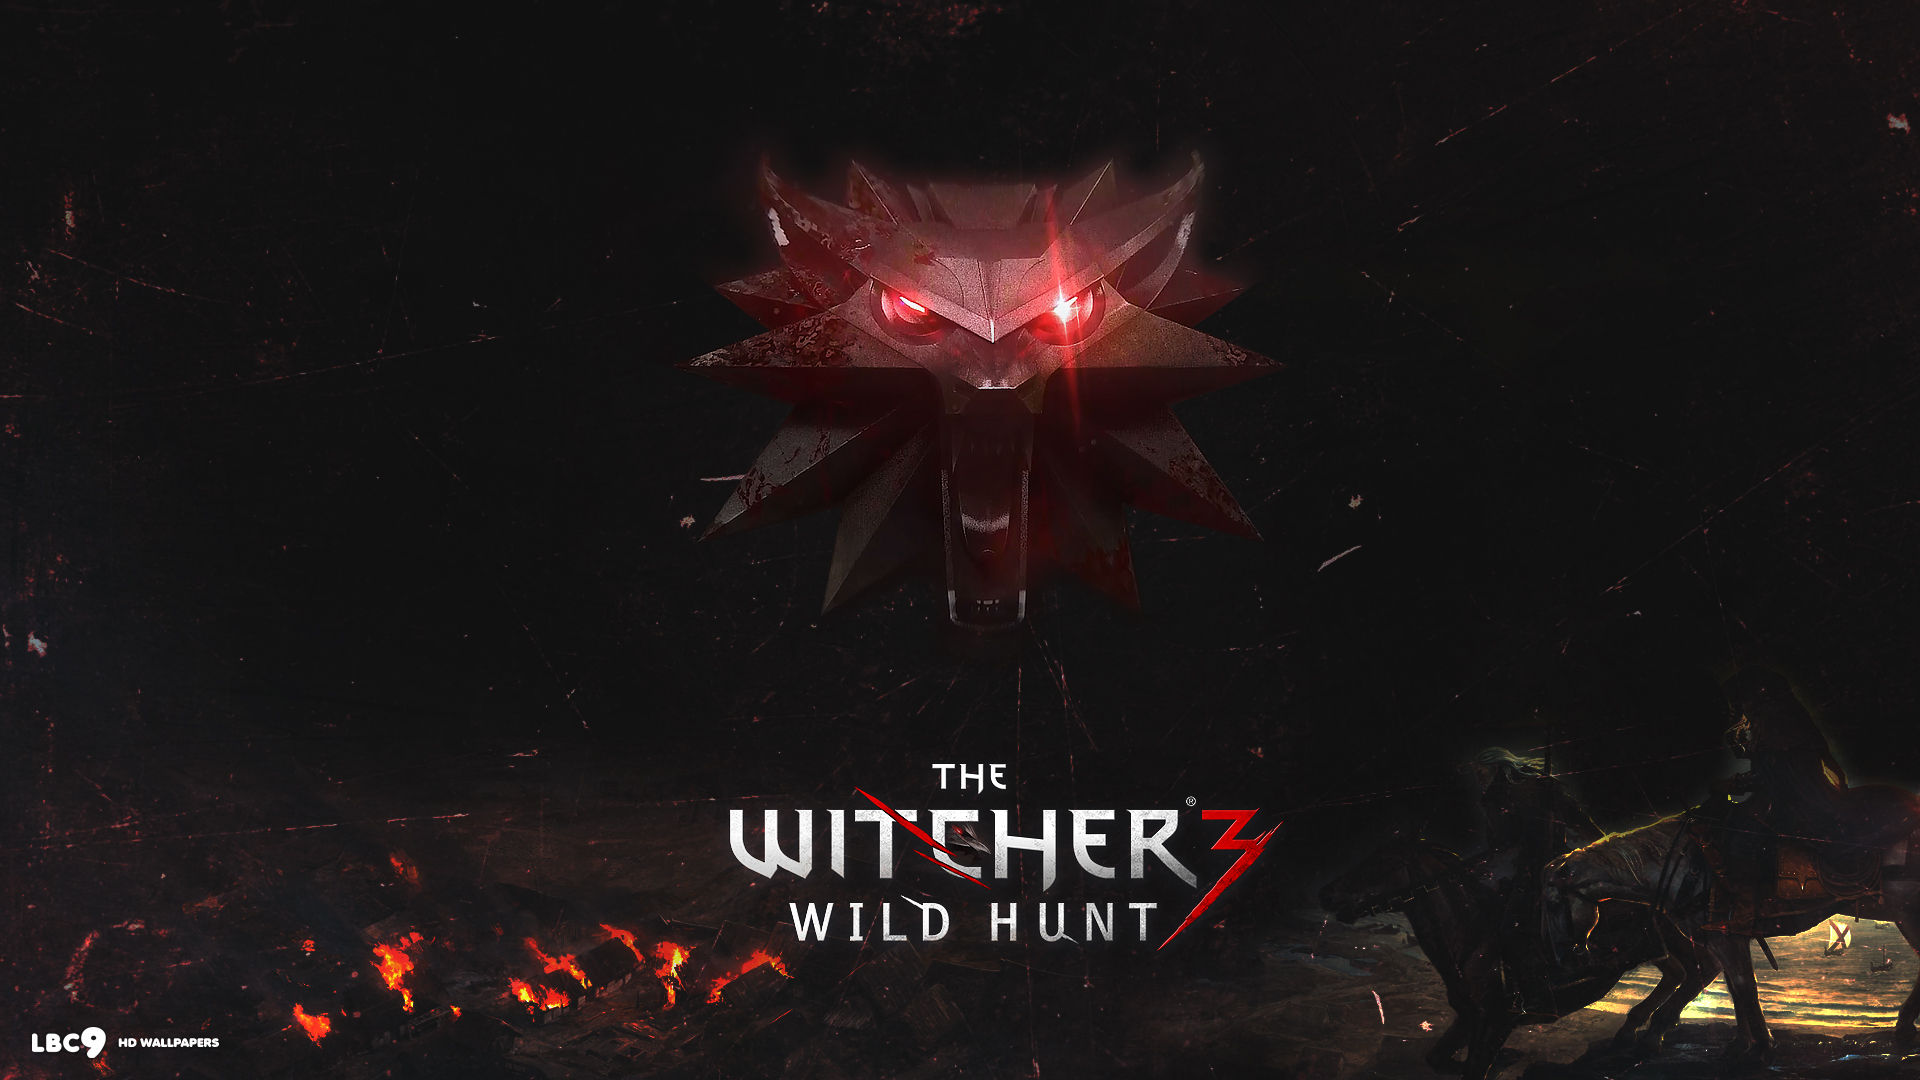 The Witcher 3 Wild Hunt Full Hd Wallpaper Arkadianvg